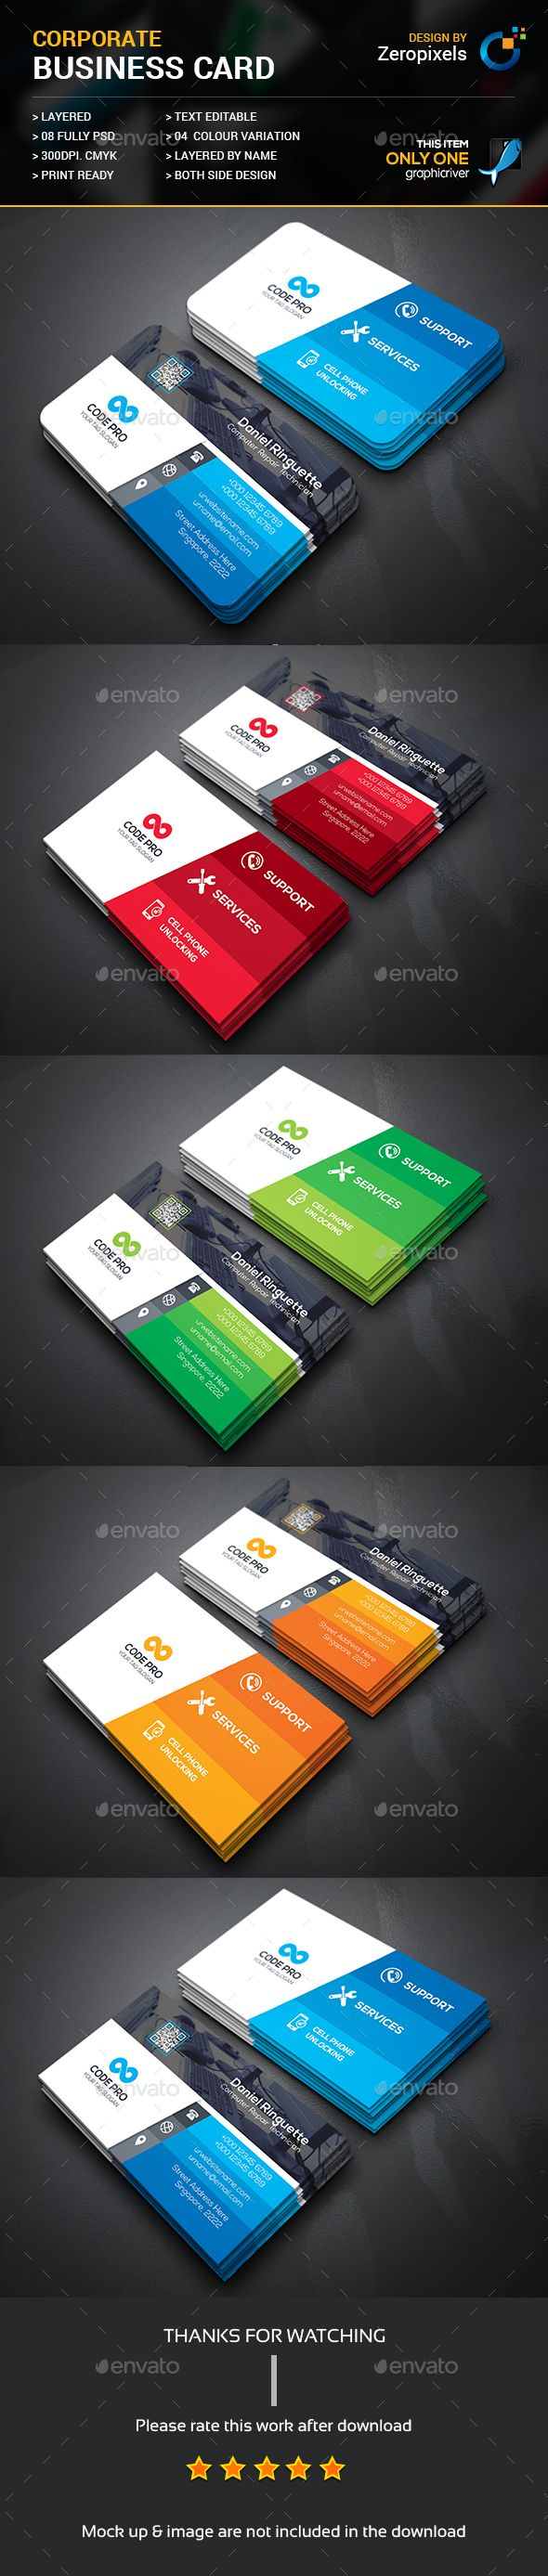 262 best business card design images on pinterest corporate medical business card template psd cheaphphosting Gallery